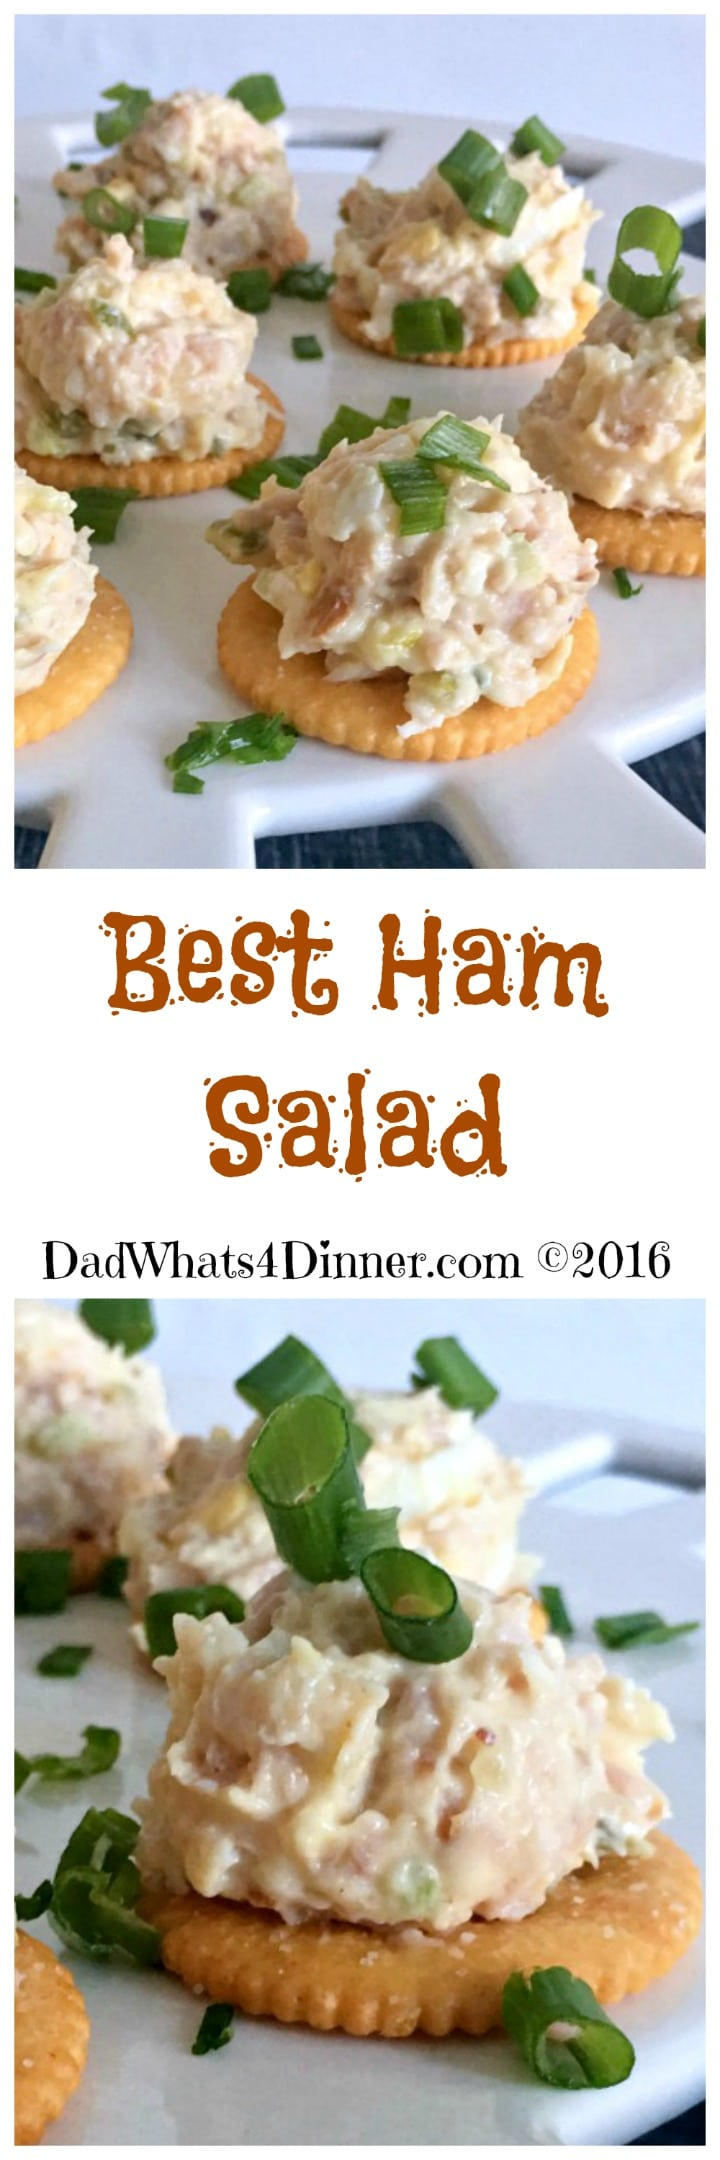 My Best Ham Salad is the perfect recipe to use up that leftover holiday ham. Creamy and smooth goes great on cracker or a sandwich!